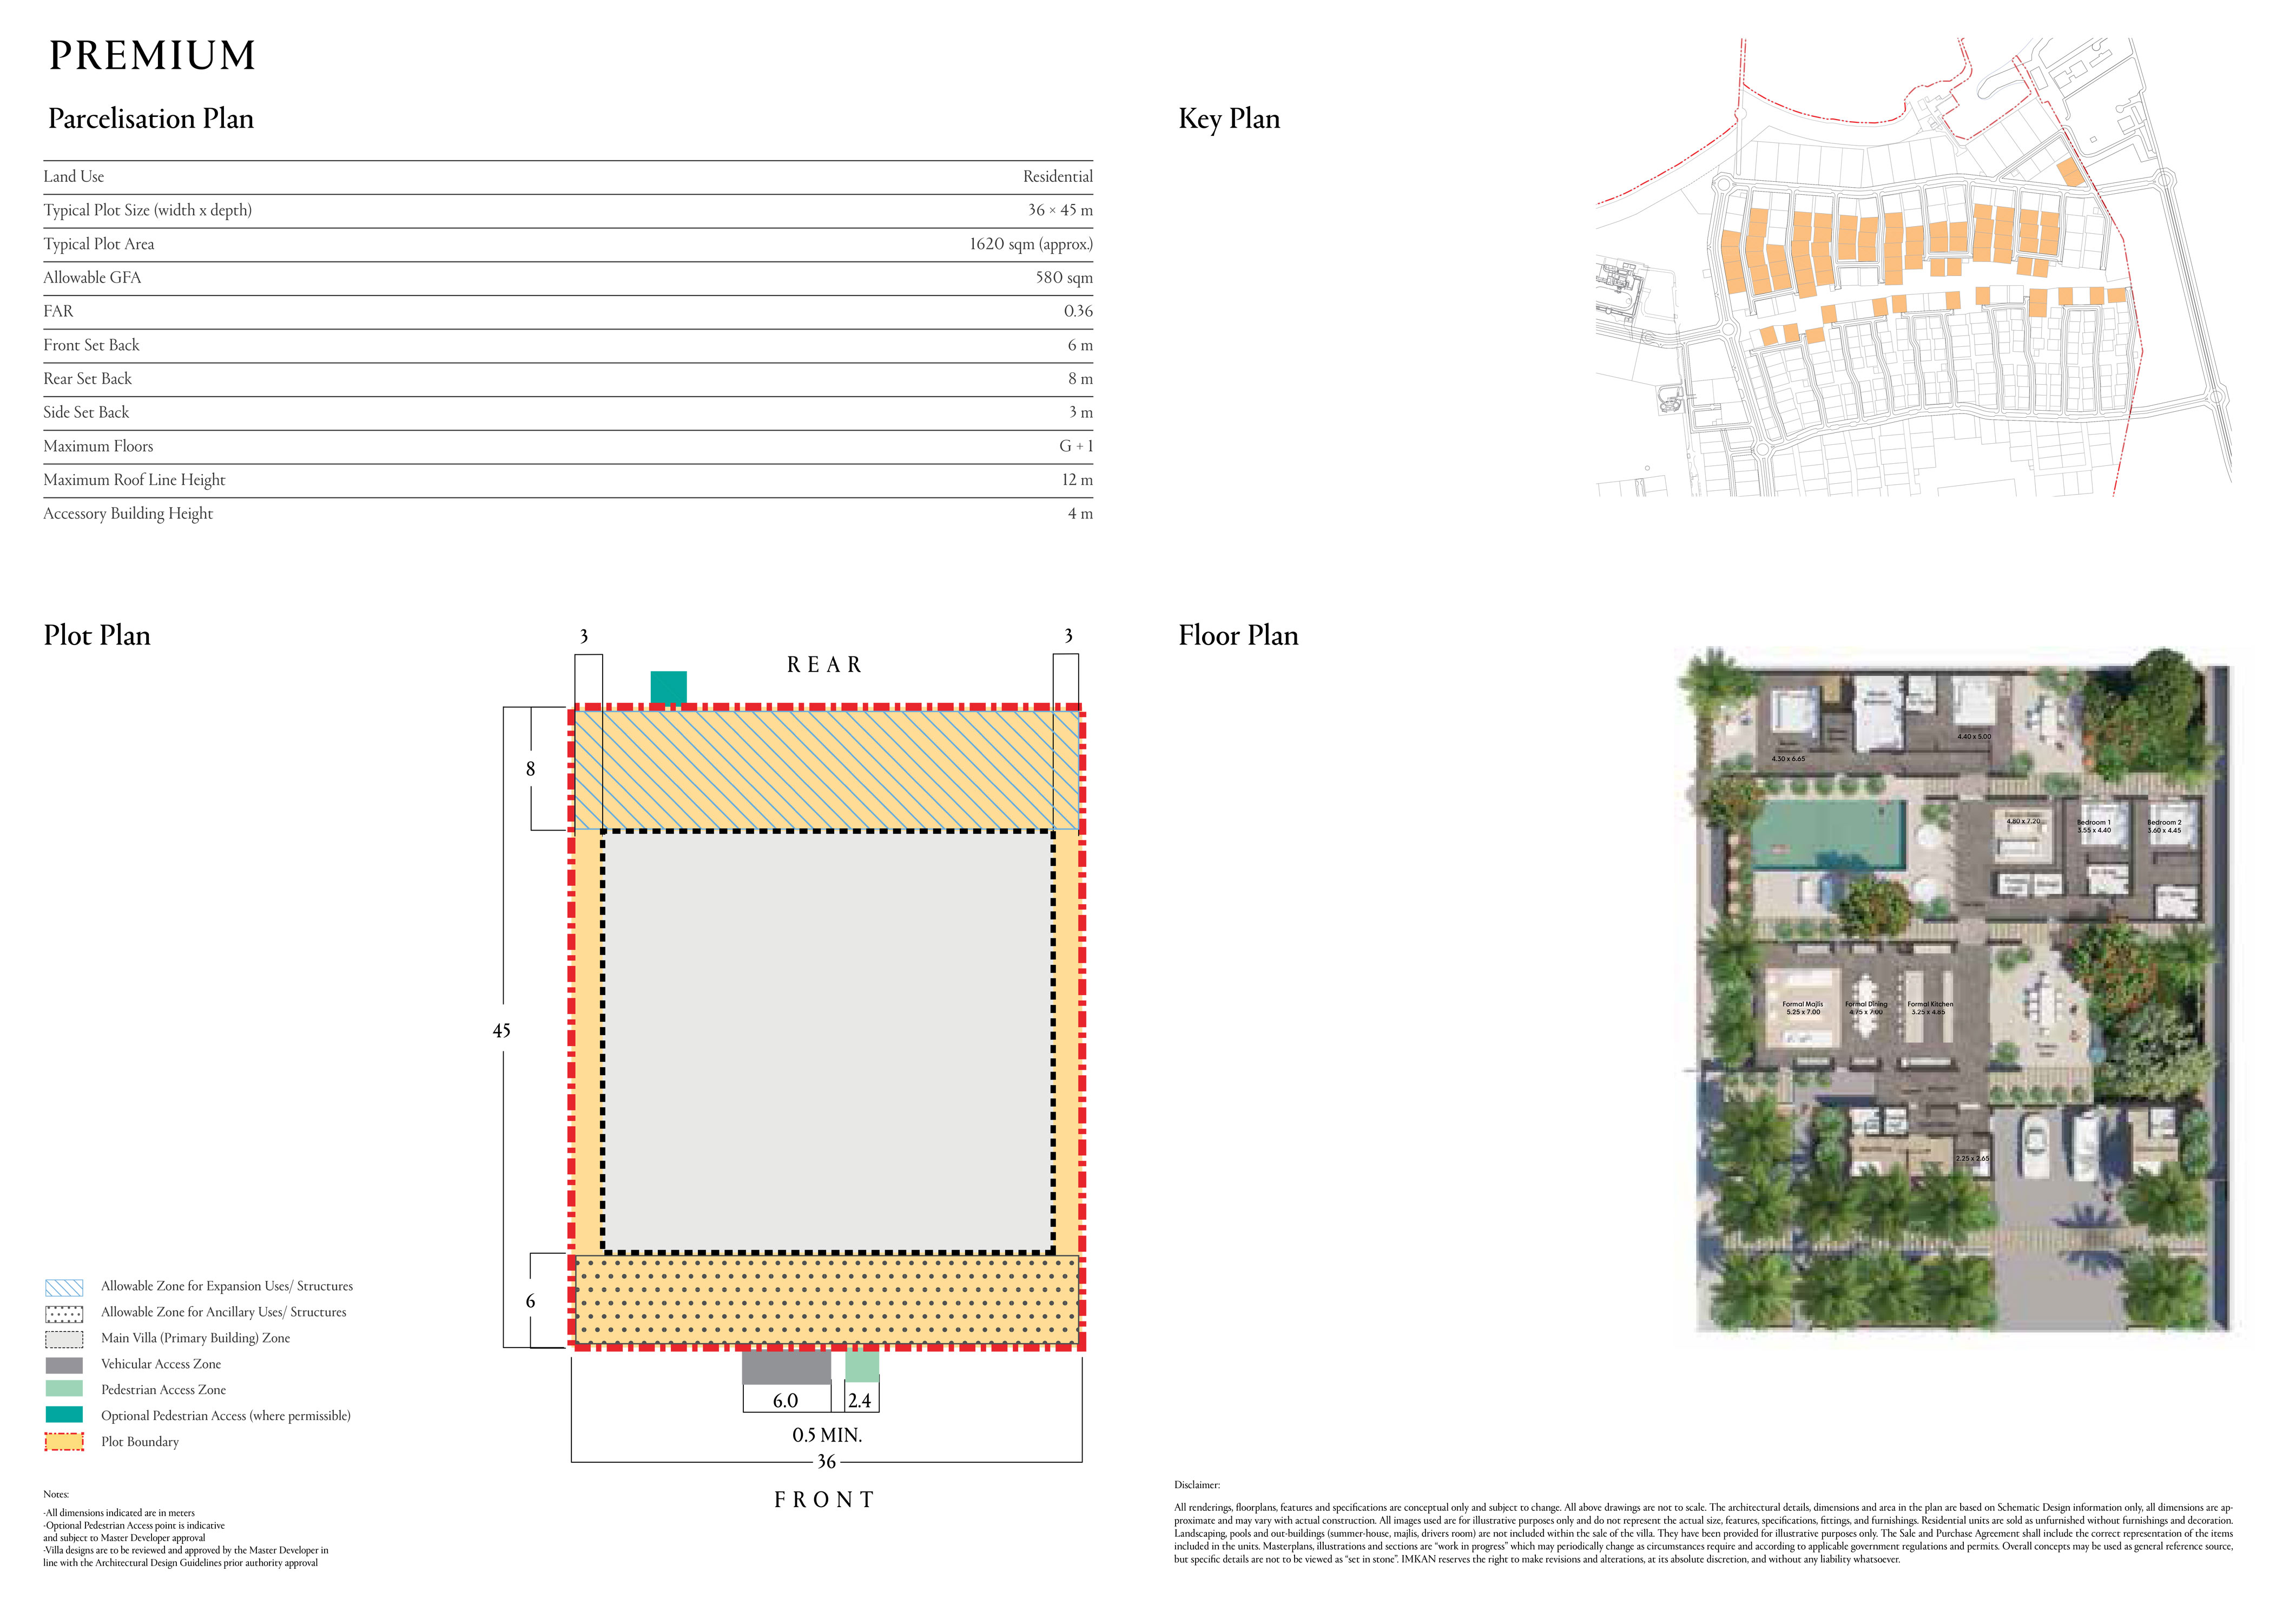 Typical Plot Size 1620 sqm (36 x 45m)